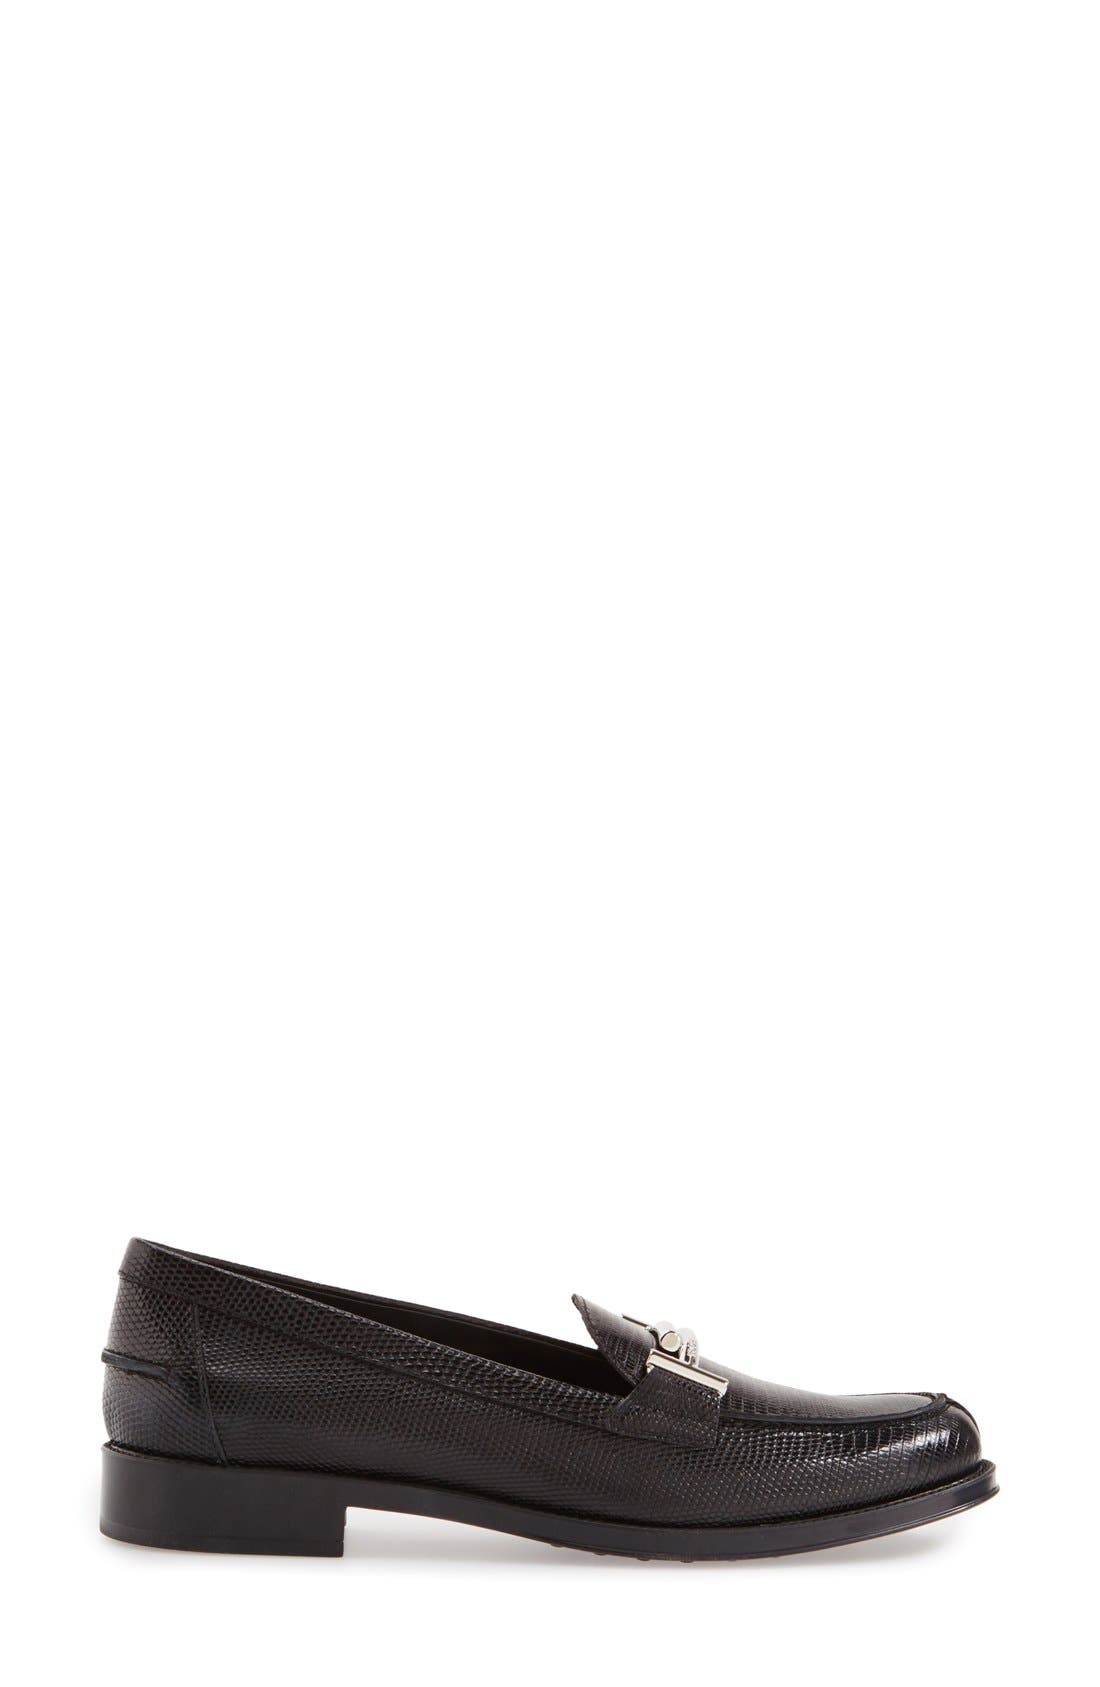 'Double T' Loafer,                             Alternate thumbnail 4, color,                             Black